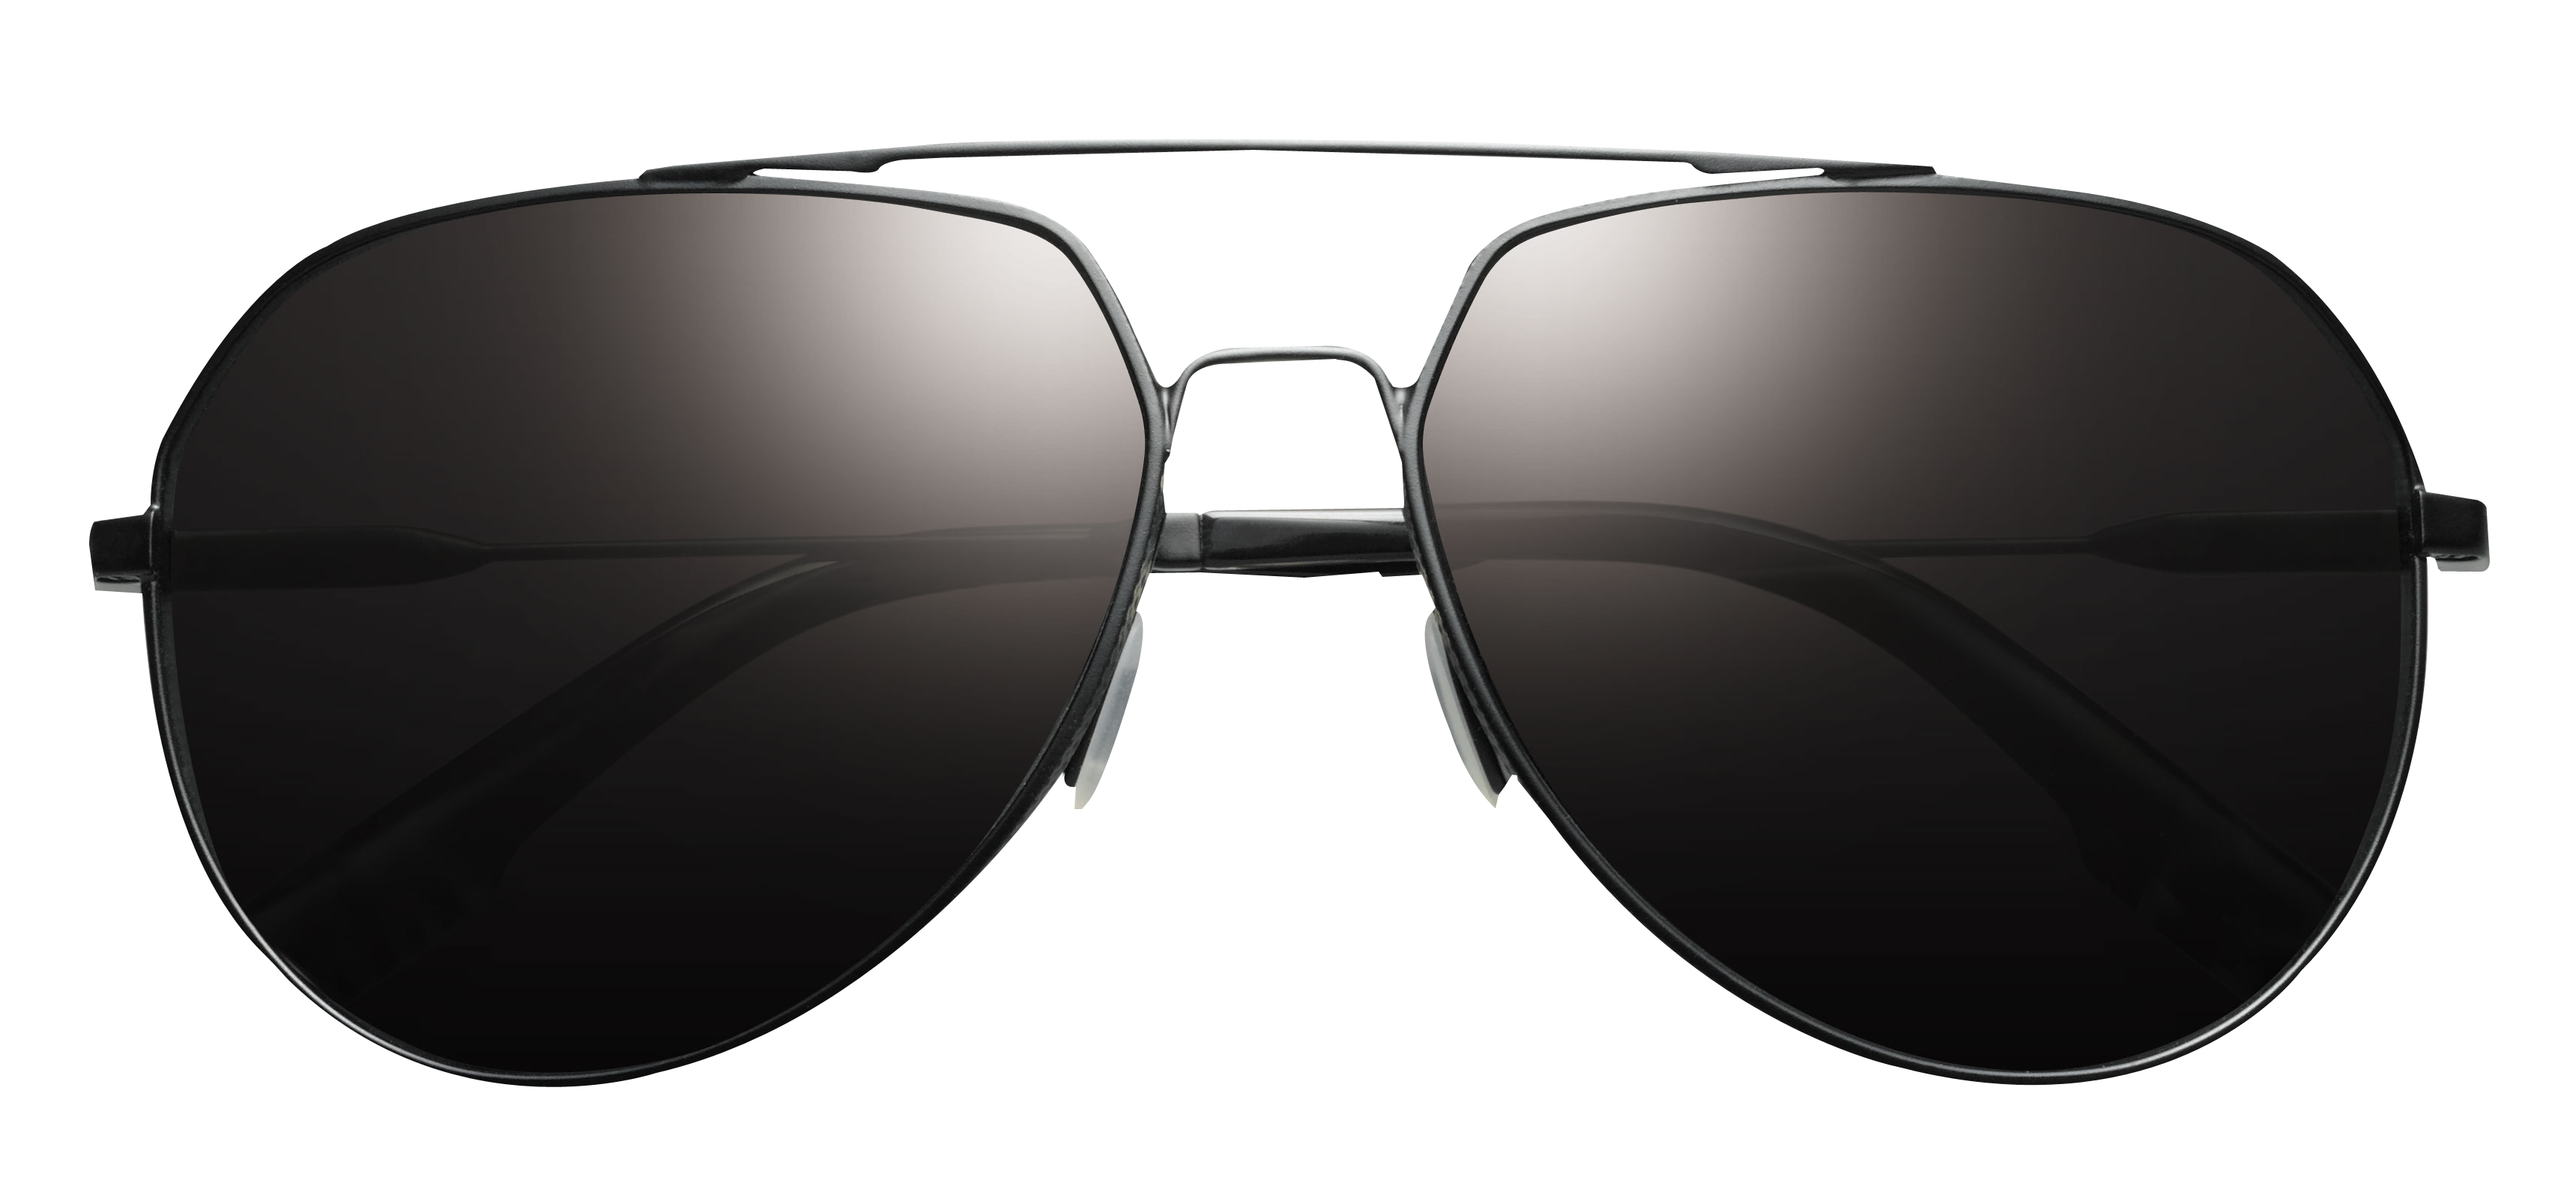 picture download Sunglass png transparent images. Aviator clipart mirrored sunglasses.